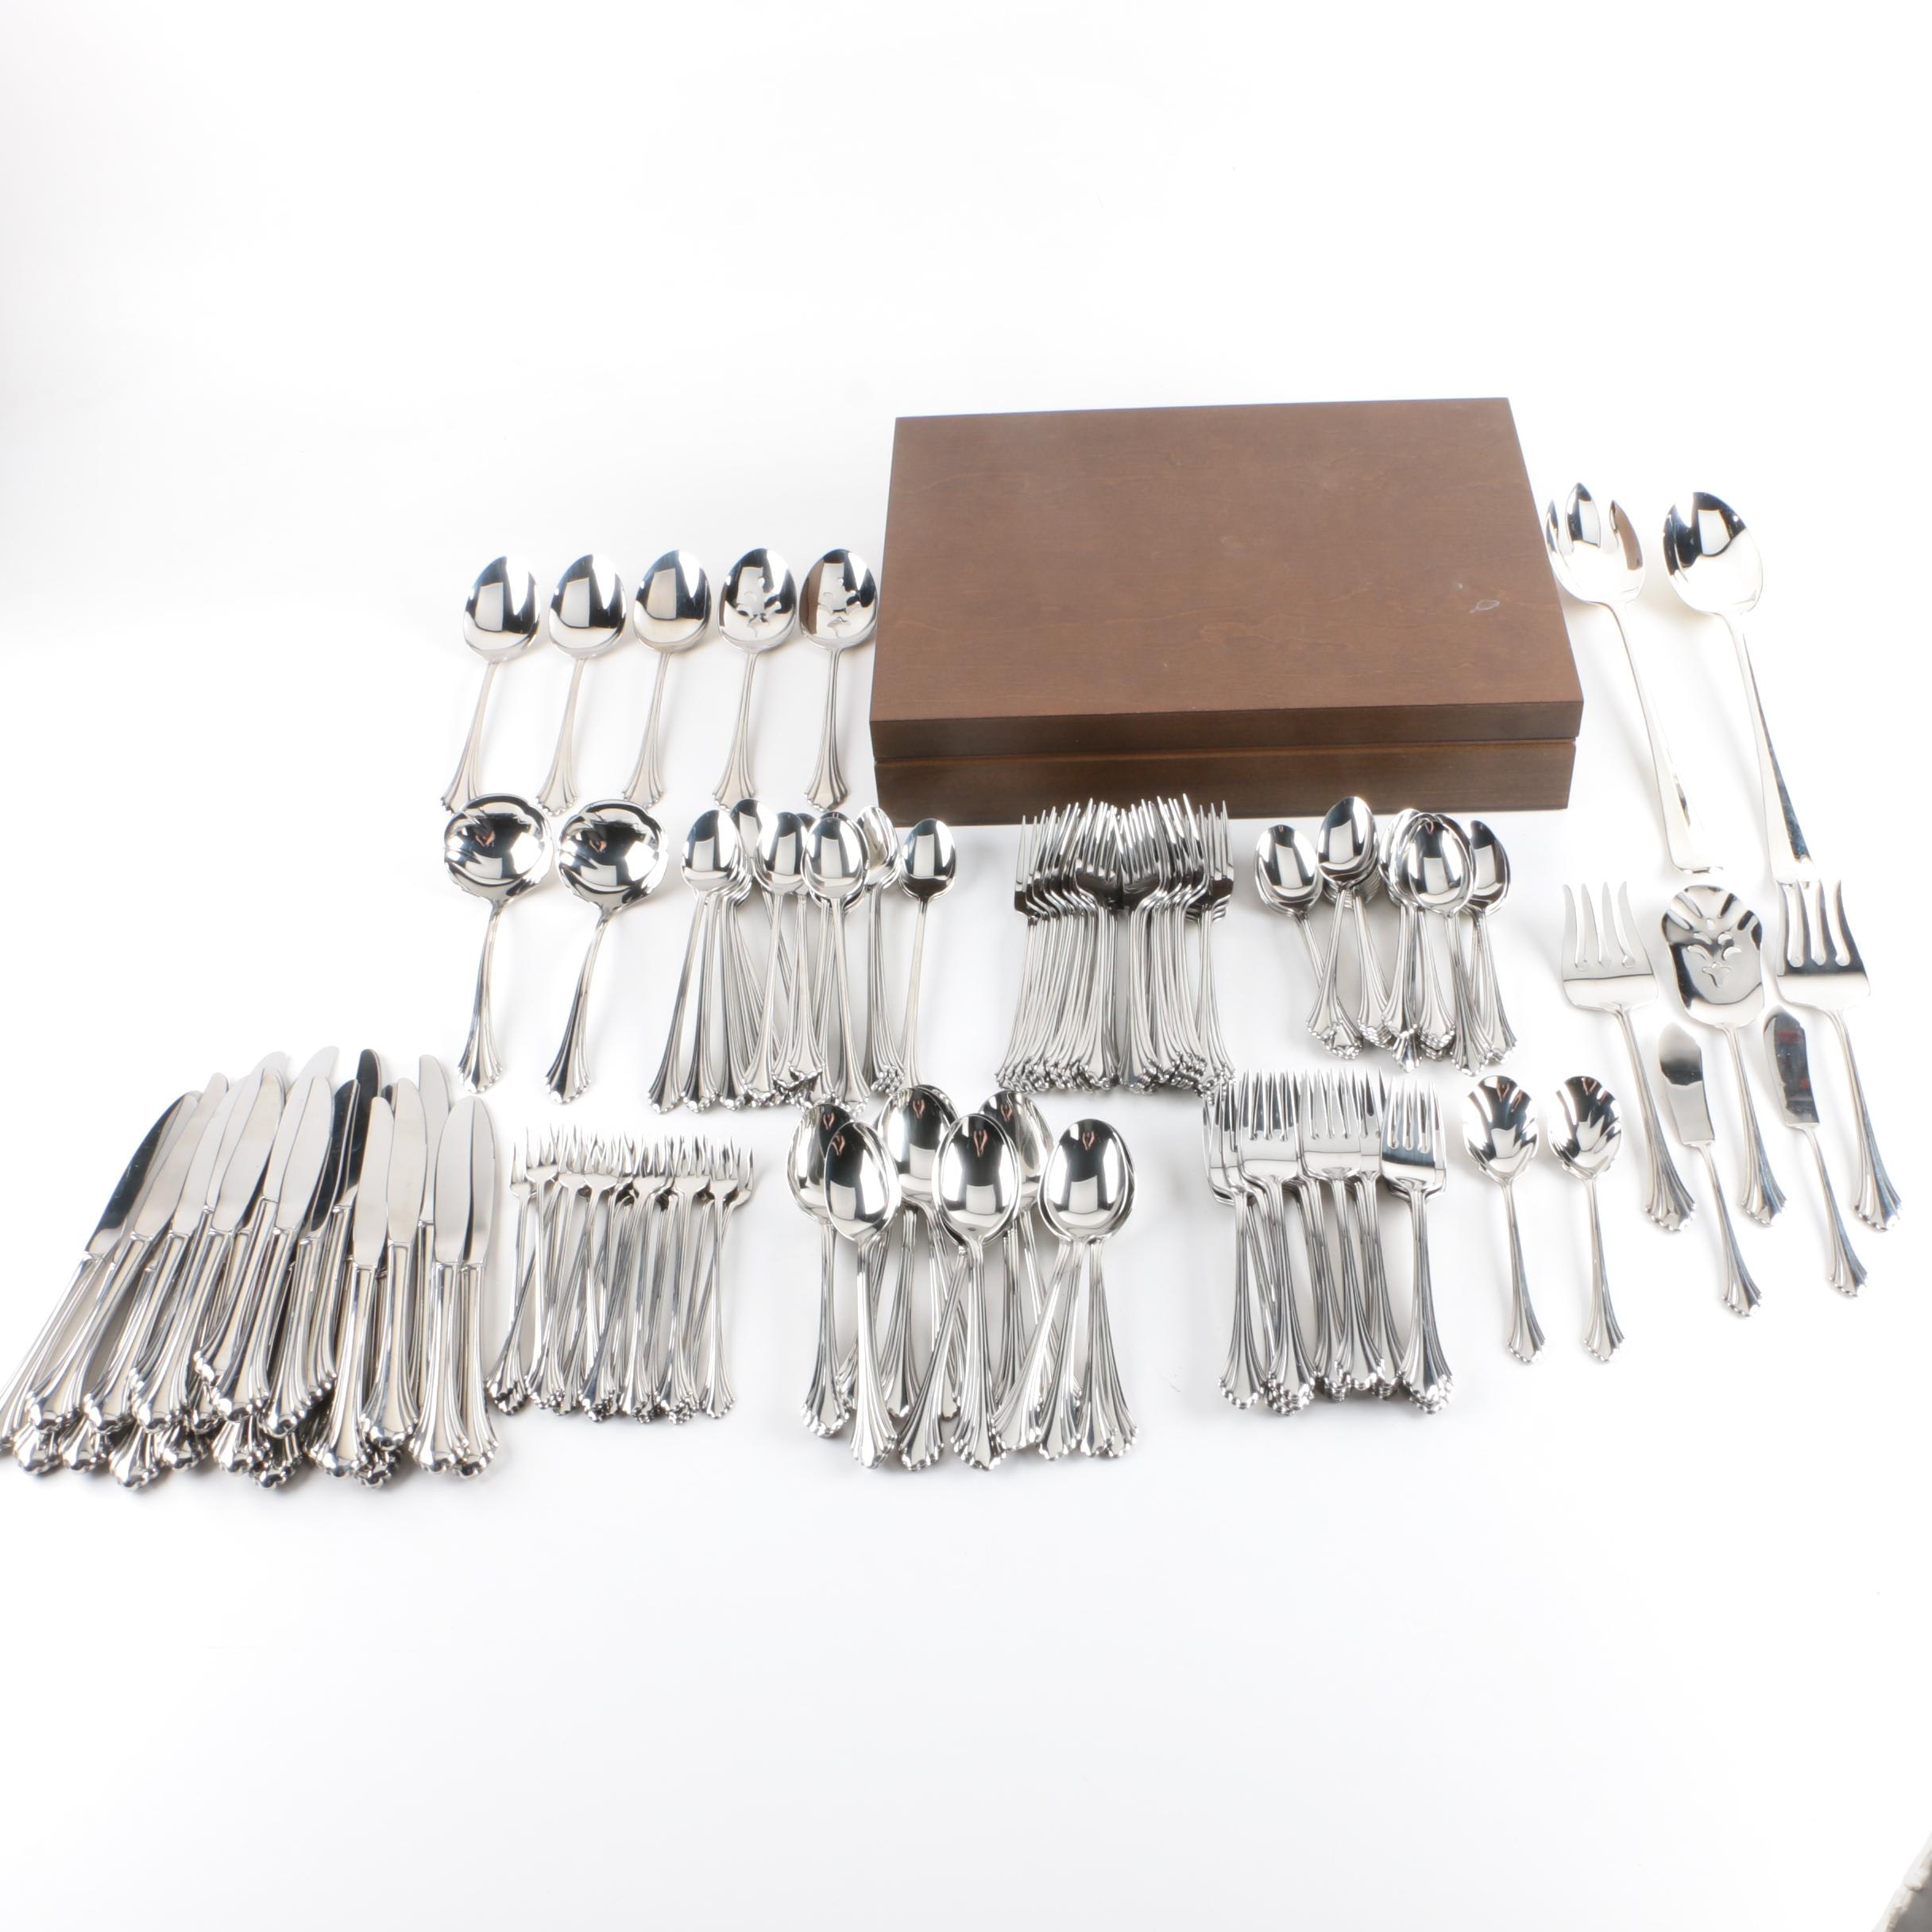 Collection of Oneida Stainless Steel Flatware